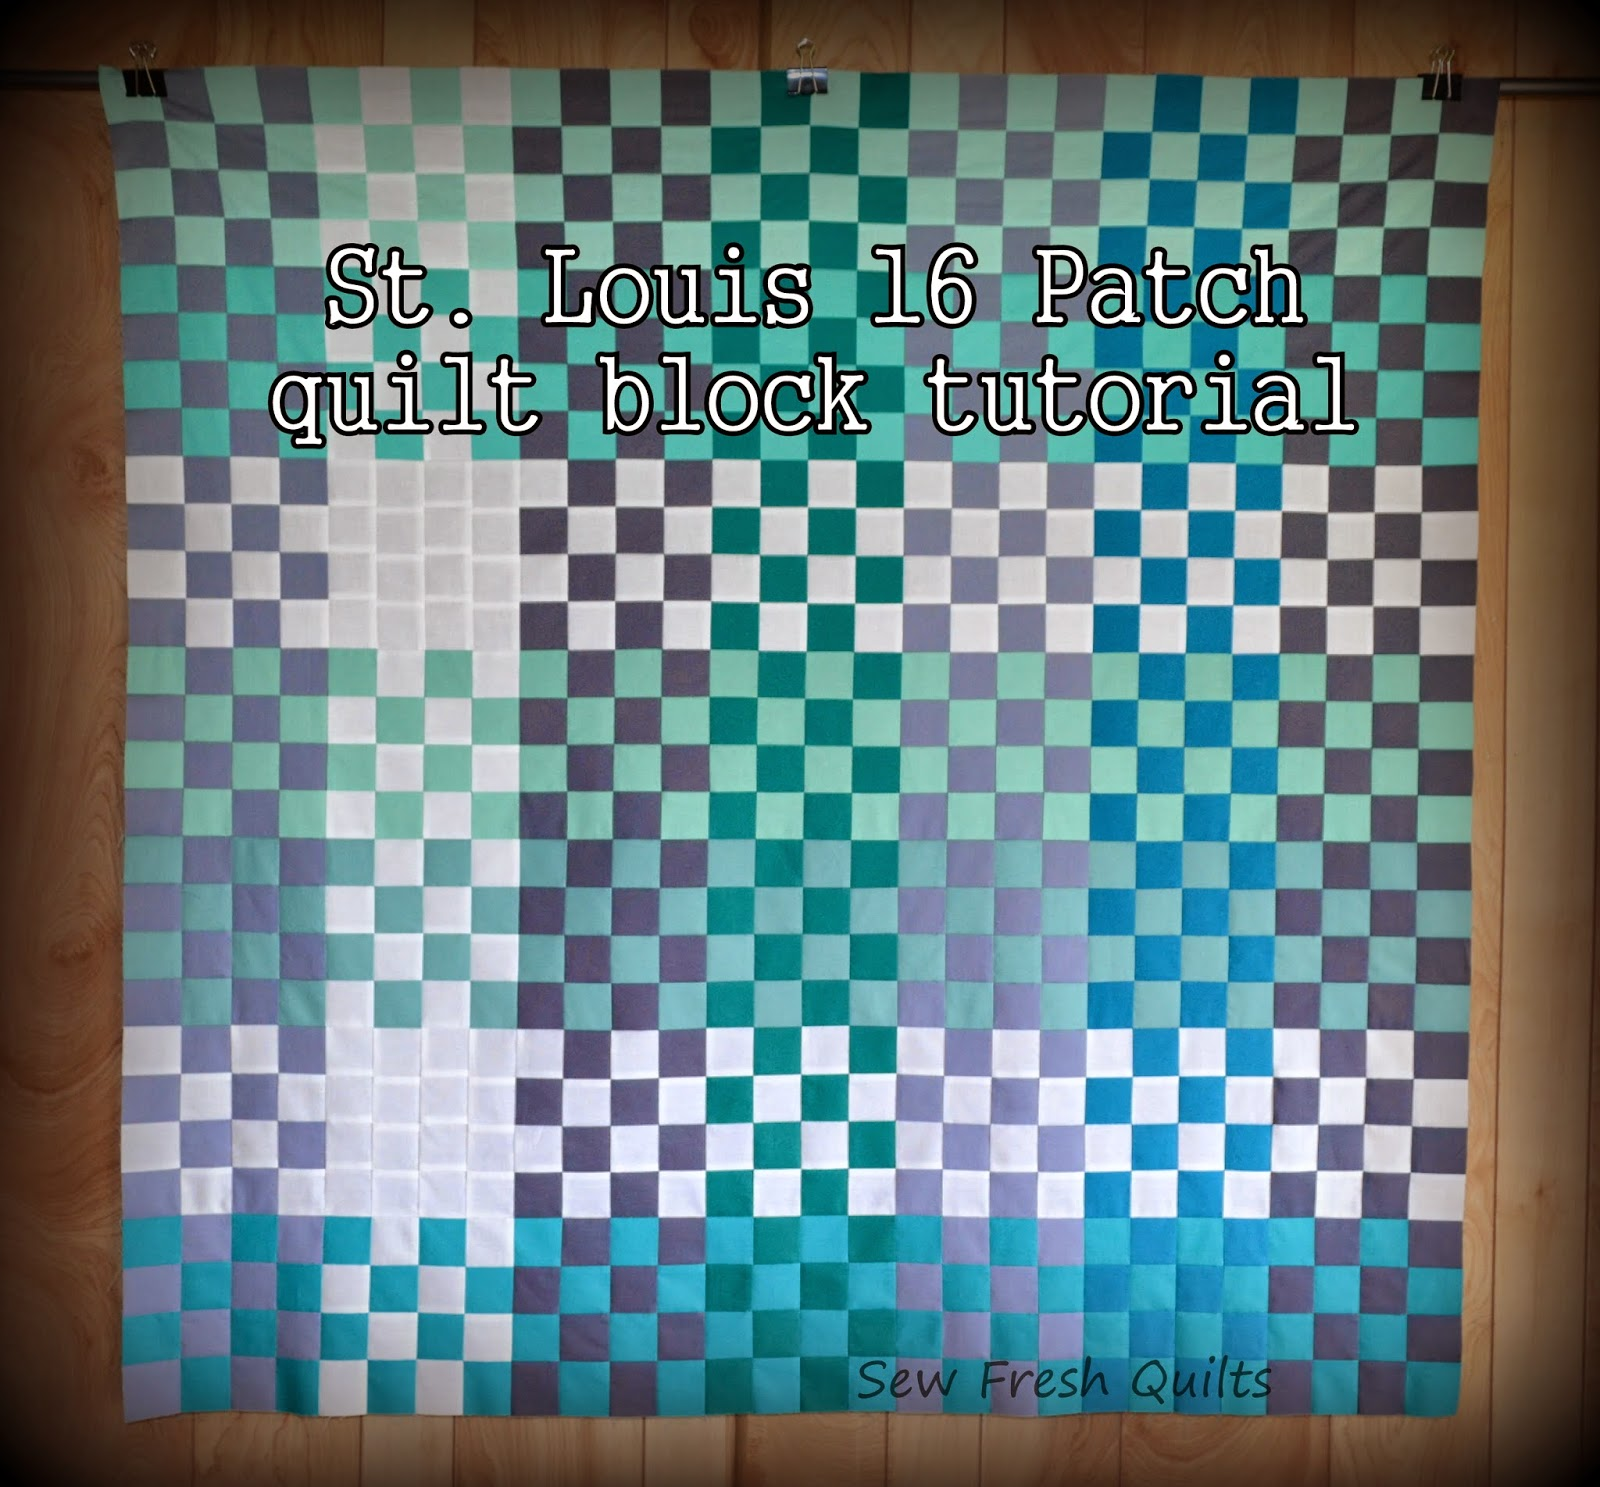 http://sewfreshquilts.blogspot.ca/2014/09/st-louis-16-patch-quilt-block-tutorial.html